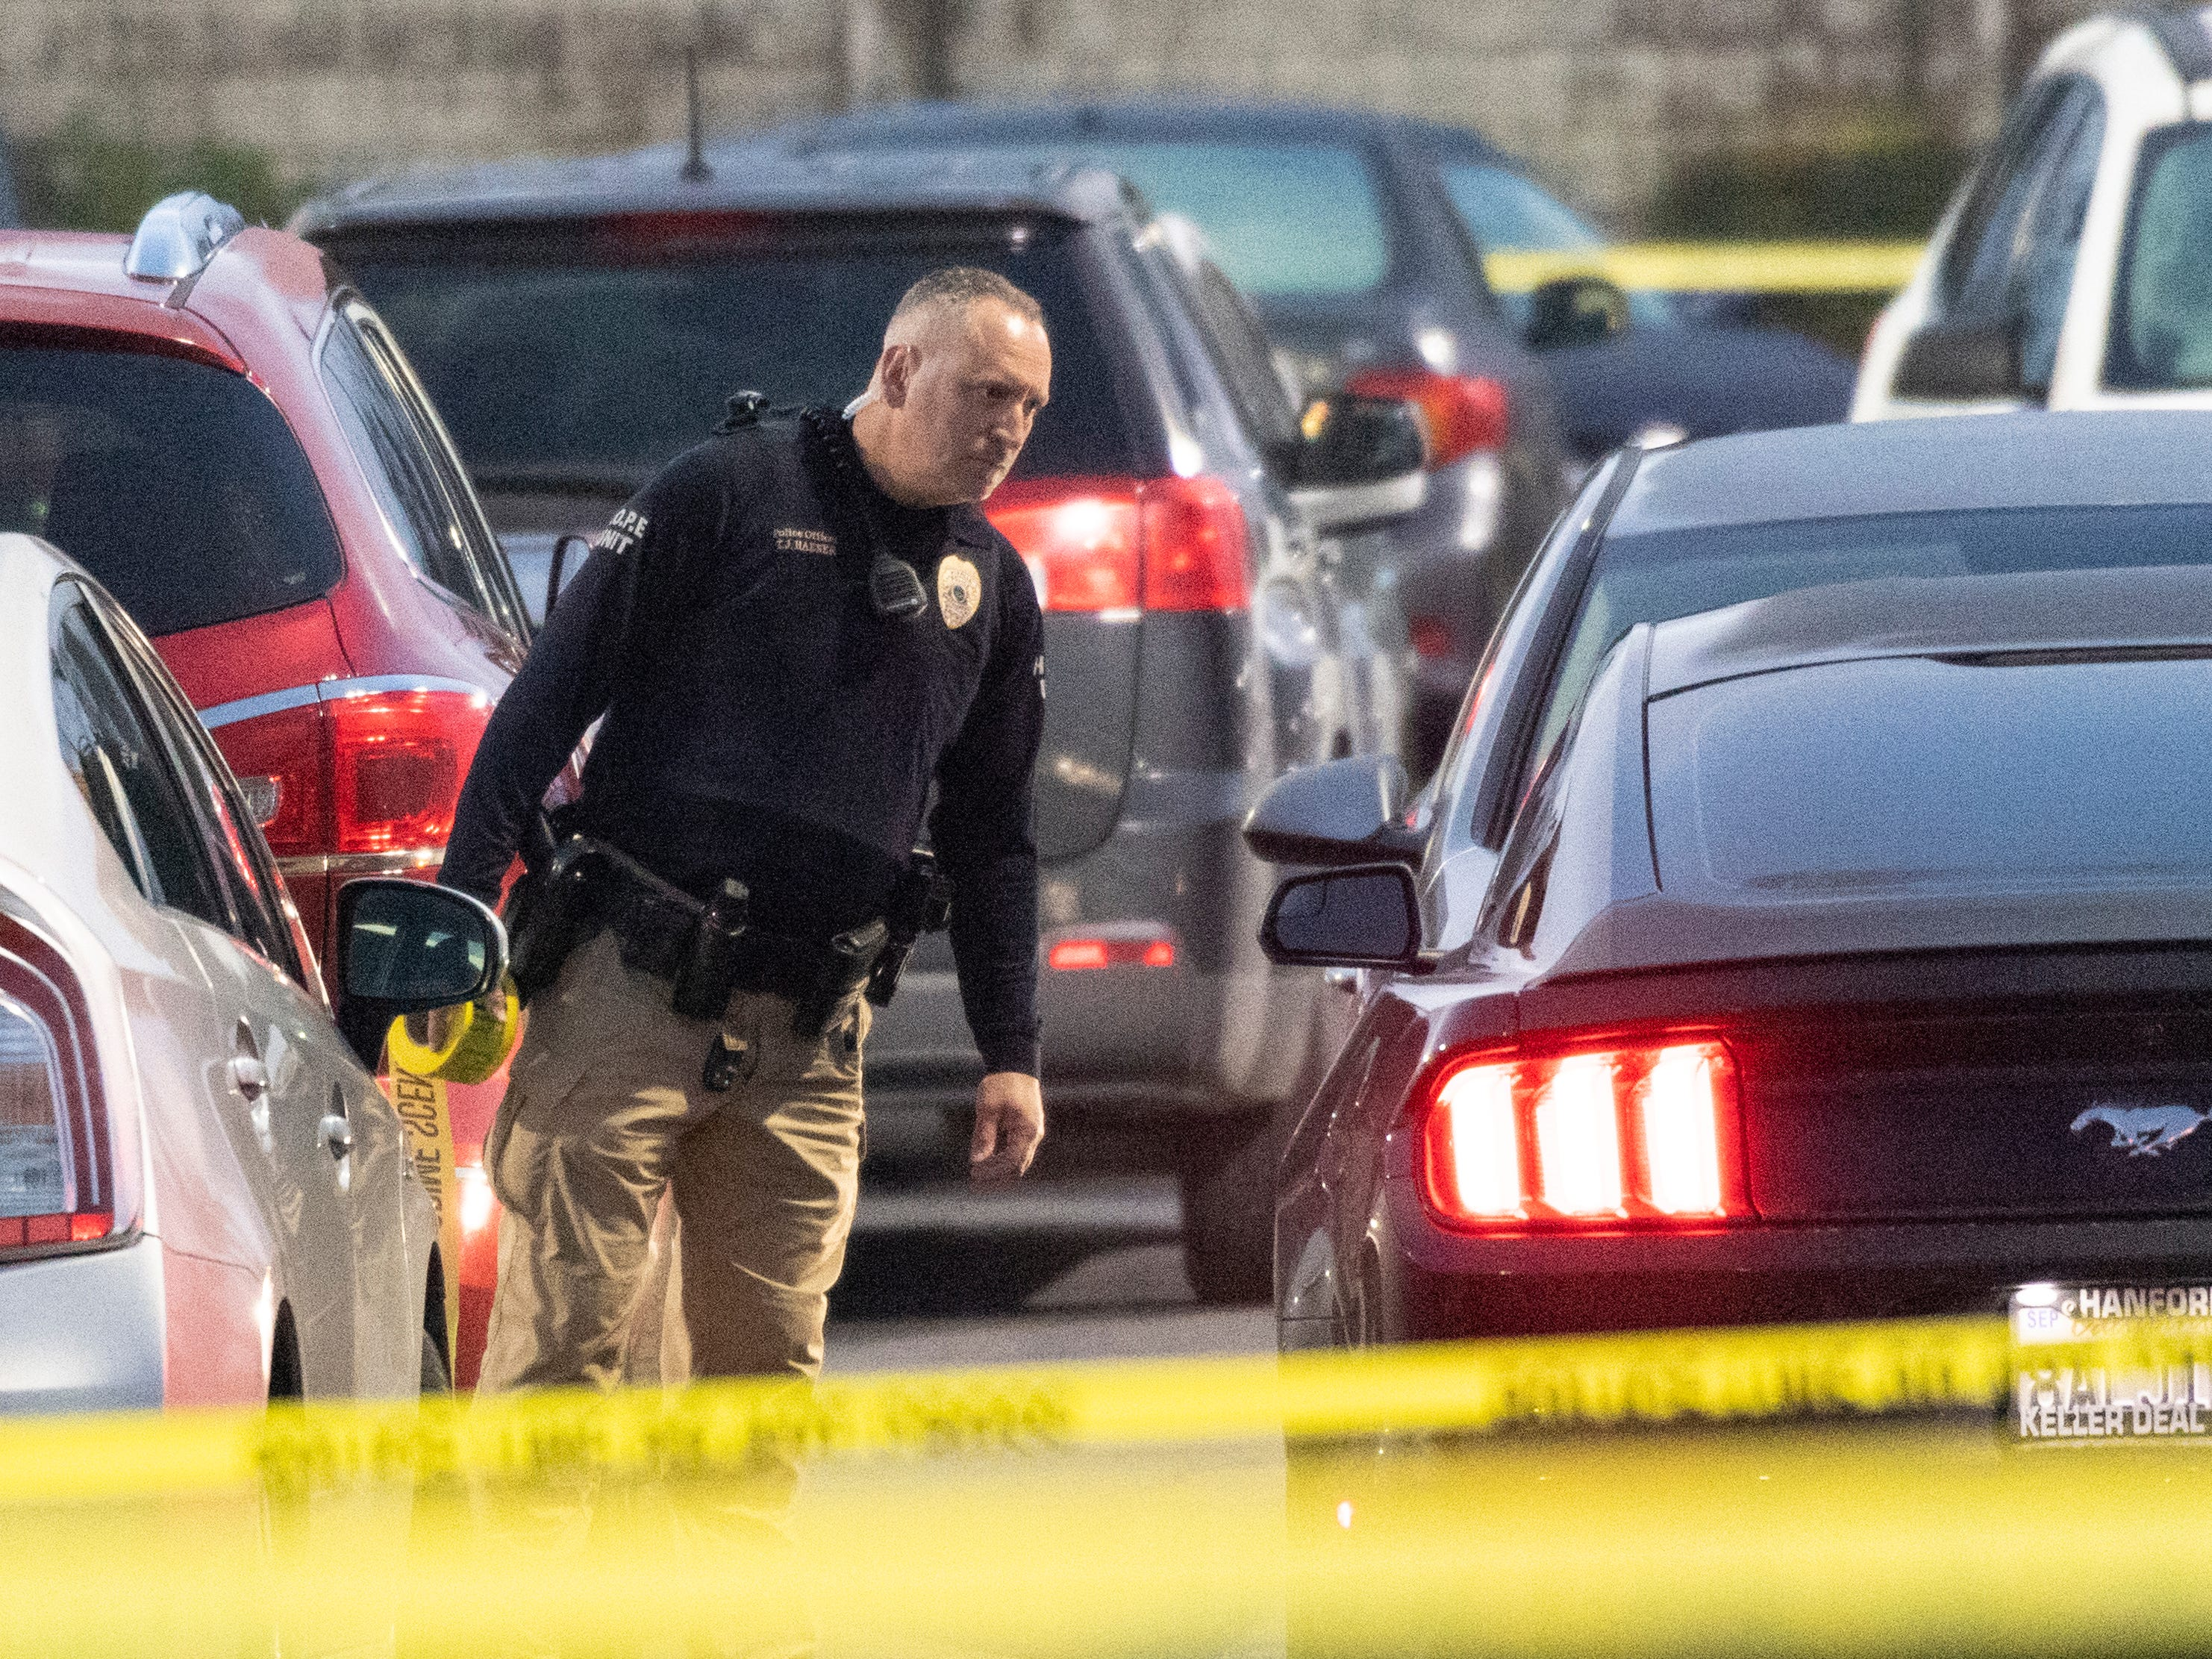 Visalia Police officers preserve the scene, including a handgun on the ground, of an officer-involved shooting in the north parking lot of Visalia Mall on Thursday, January 10, 2019.